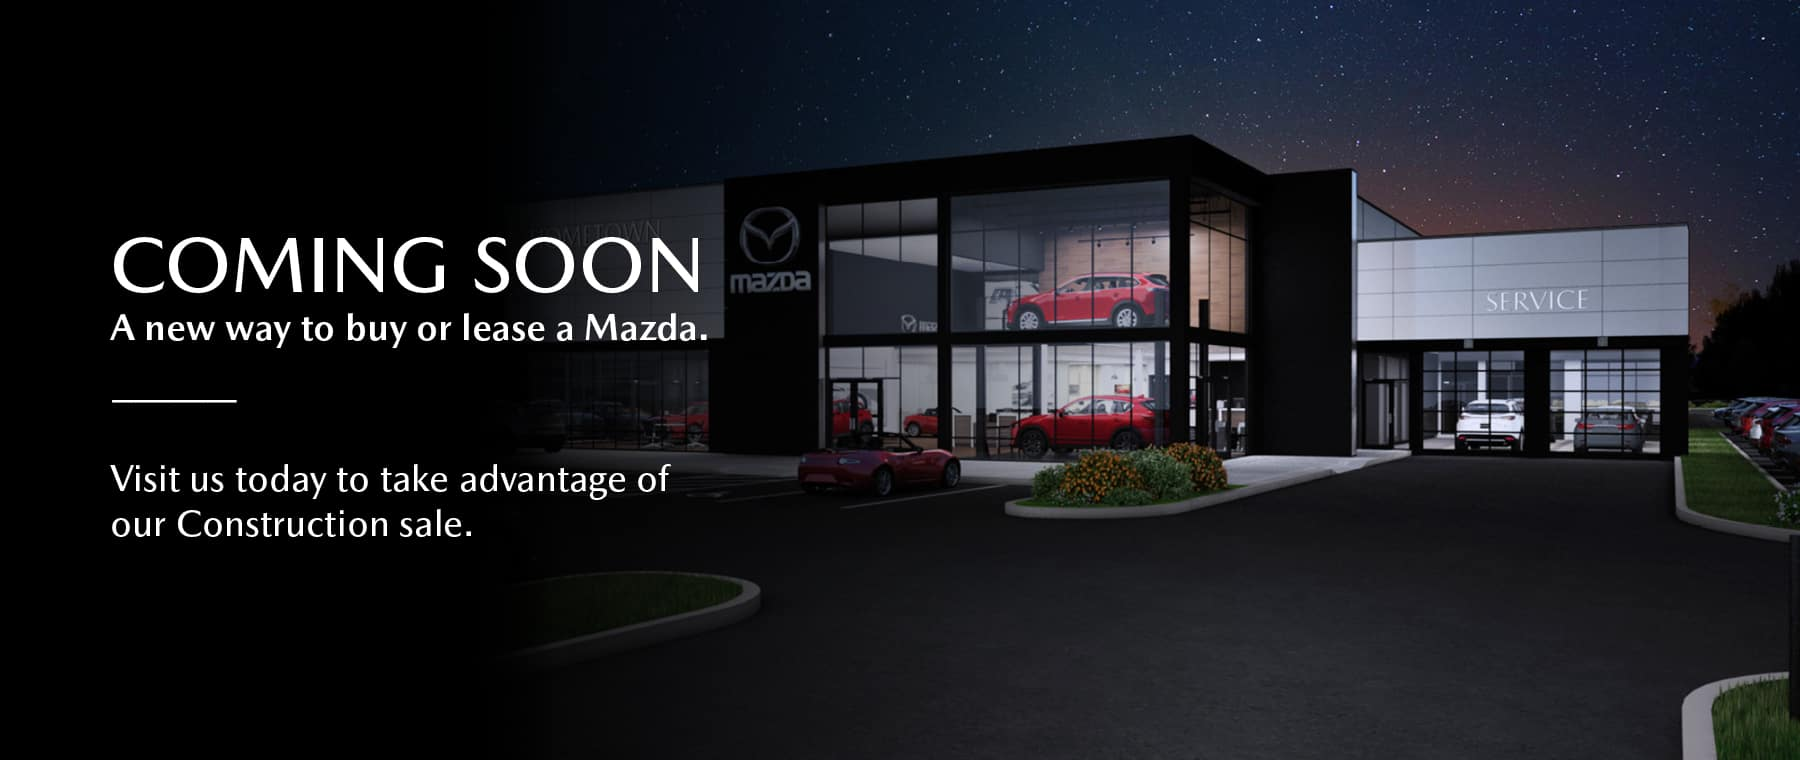 Coming soon. A new way to buy or lease a Mazda. Visit us today to take advantage of our Construction sale.